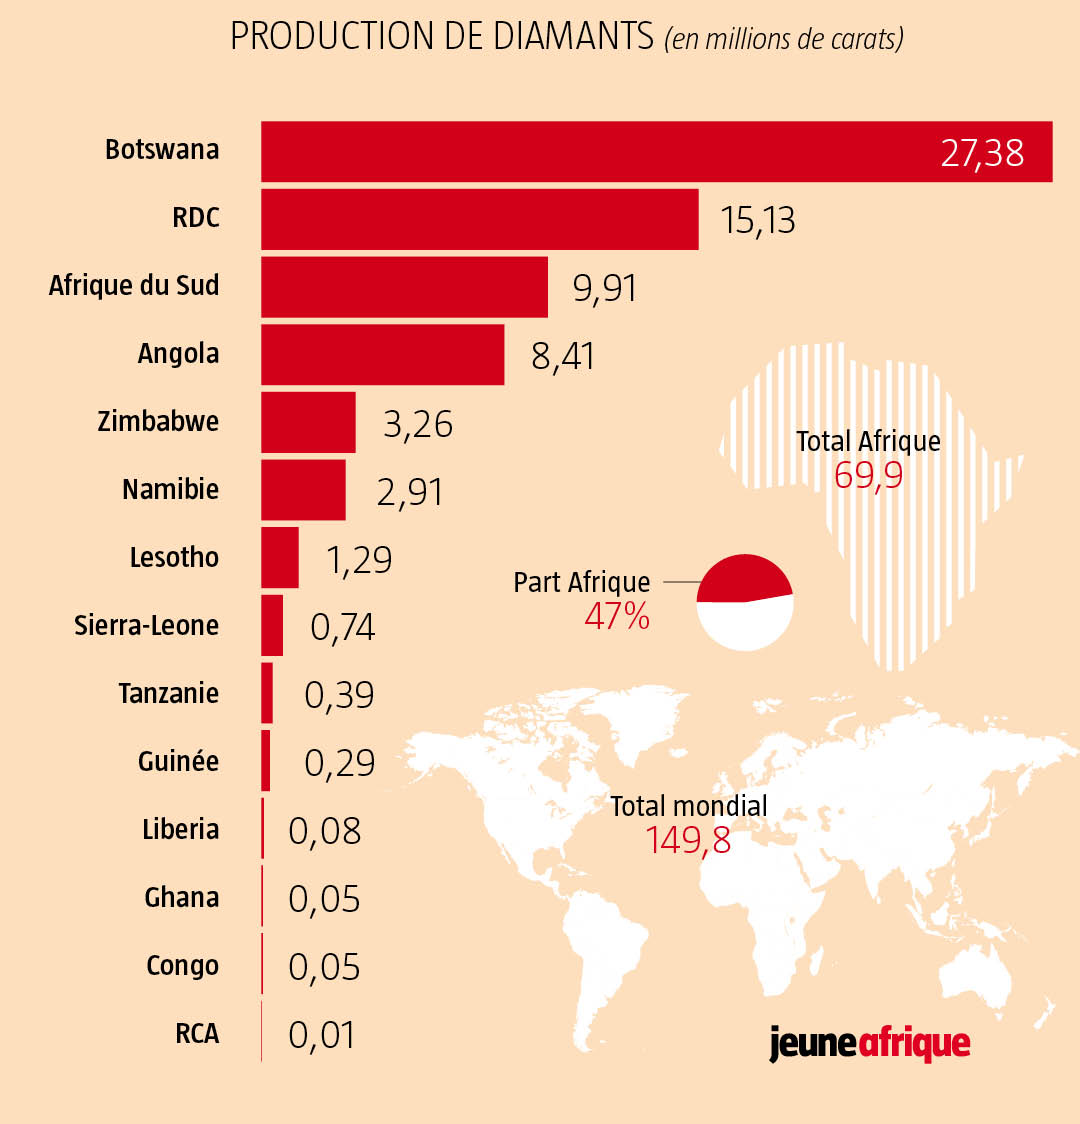 Part de l'Afrique dans la production mondiale de diamants